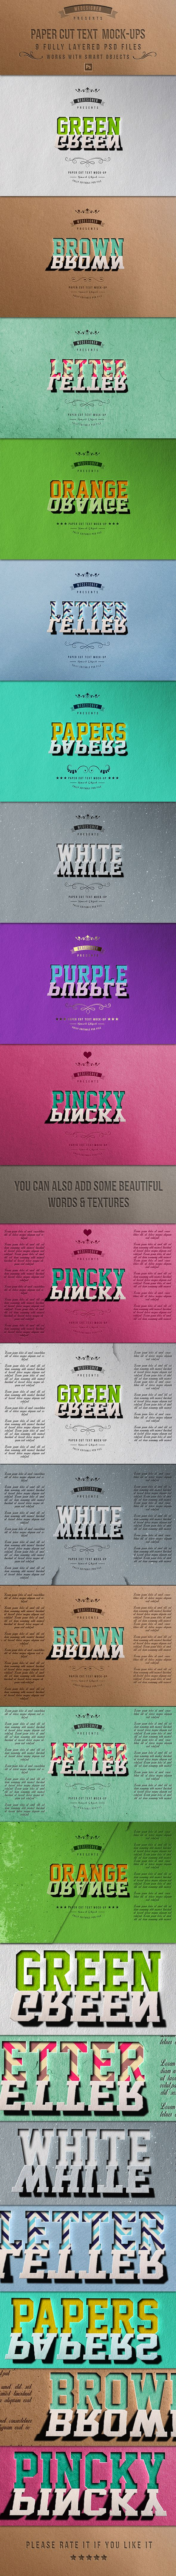 Paper Cut Text MockUps — Layered PSD #add-on #asl • Download ➝ https://graphicriver.net/item/paper-cut-text-mockups/19009260?ref=pxcr